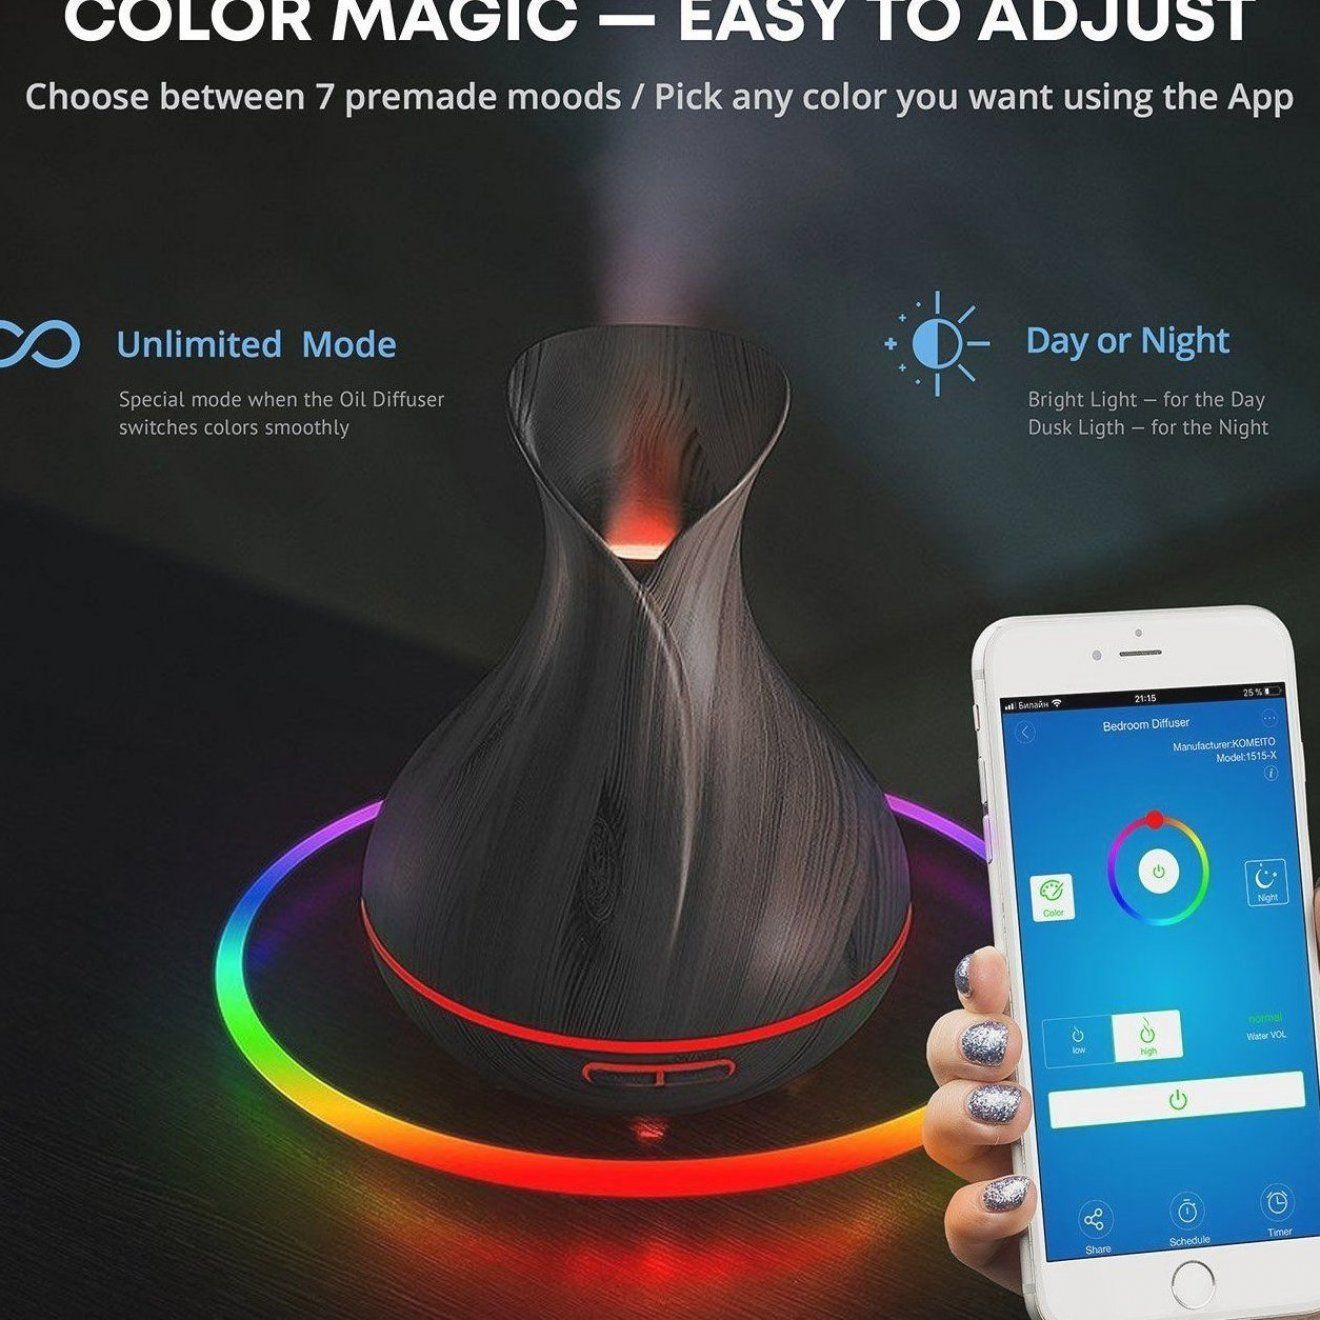 Wonderful Scents      Valentine Gift      WiFi Smart Home Essential Oil Diffuser  Alexa and Google Home  15  off   #FreeShip   #Valentine #ValentinesDay #ValentinesDay2020 #gifts #giftsforher #ValentinesDayGifts #gifts #giftsforher #essentialoils #scents #fragrance #aromas #diffuser #aromatherapy #selfcare #selflove  #healthy   #relax #Wellbeing #wellness #healthtips #natural #organic #essentialoil #candles #soywaxmelts #waxmelts #HimalayanSaltLamp #saltlamp #saltlamps